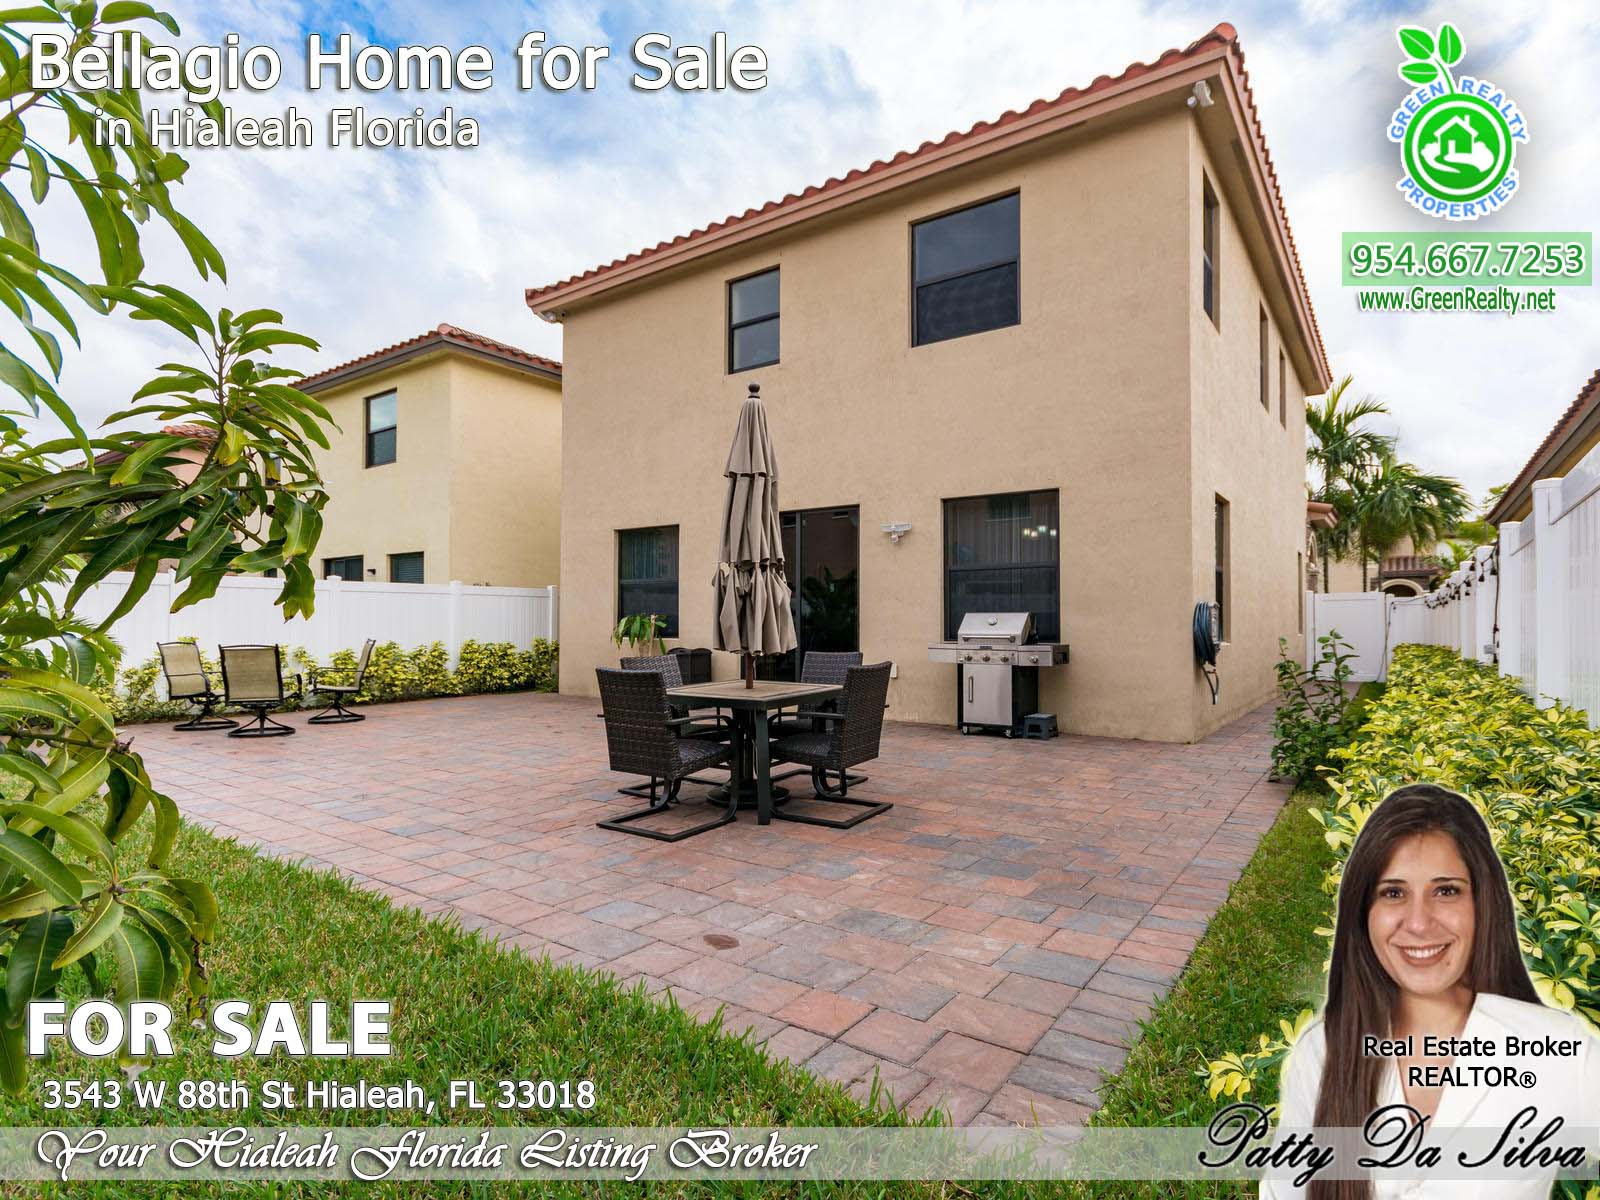 South florida homes for sale by broker Patty da silva of green realty properties (3)